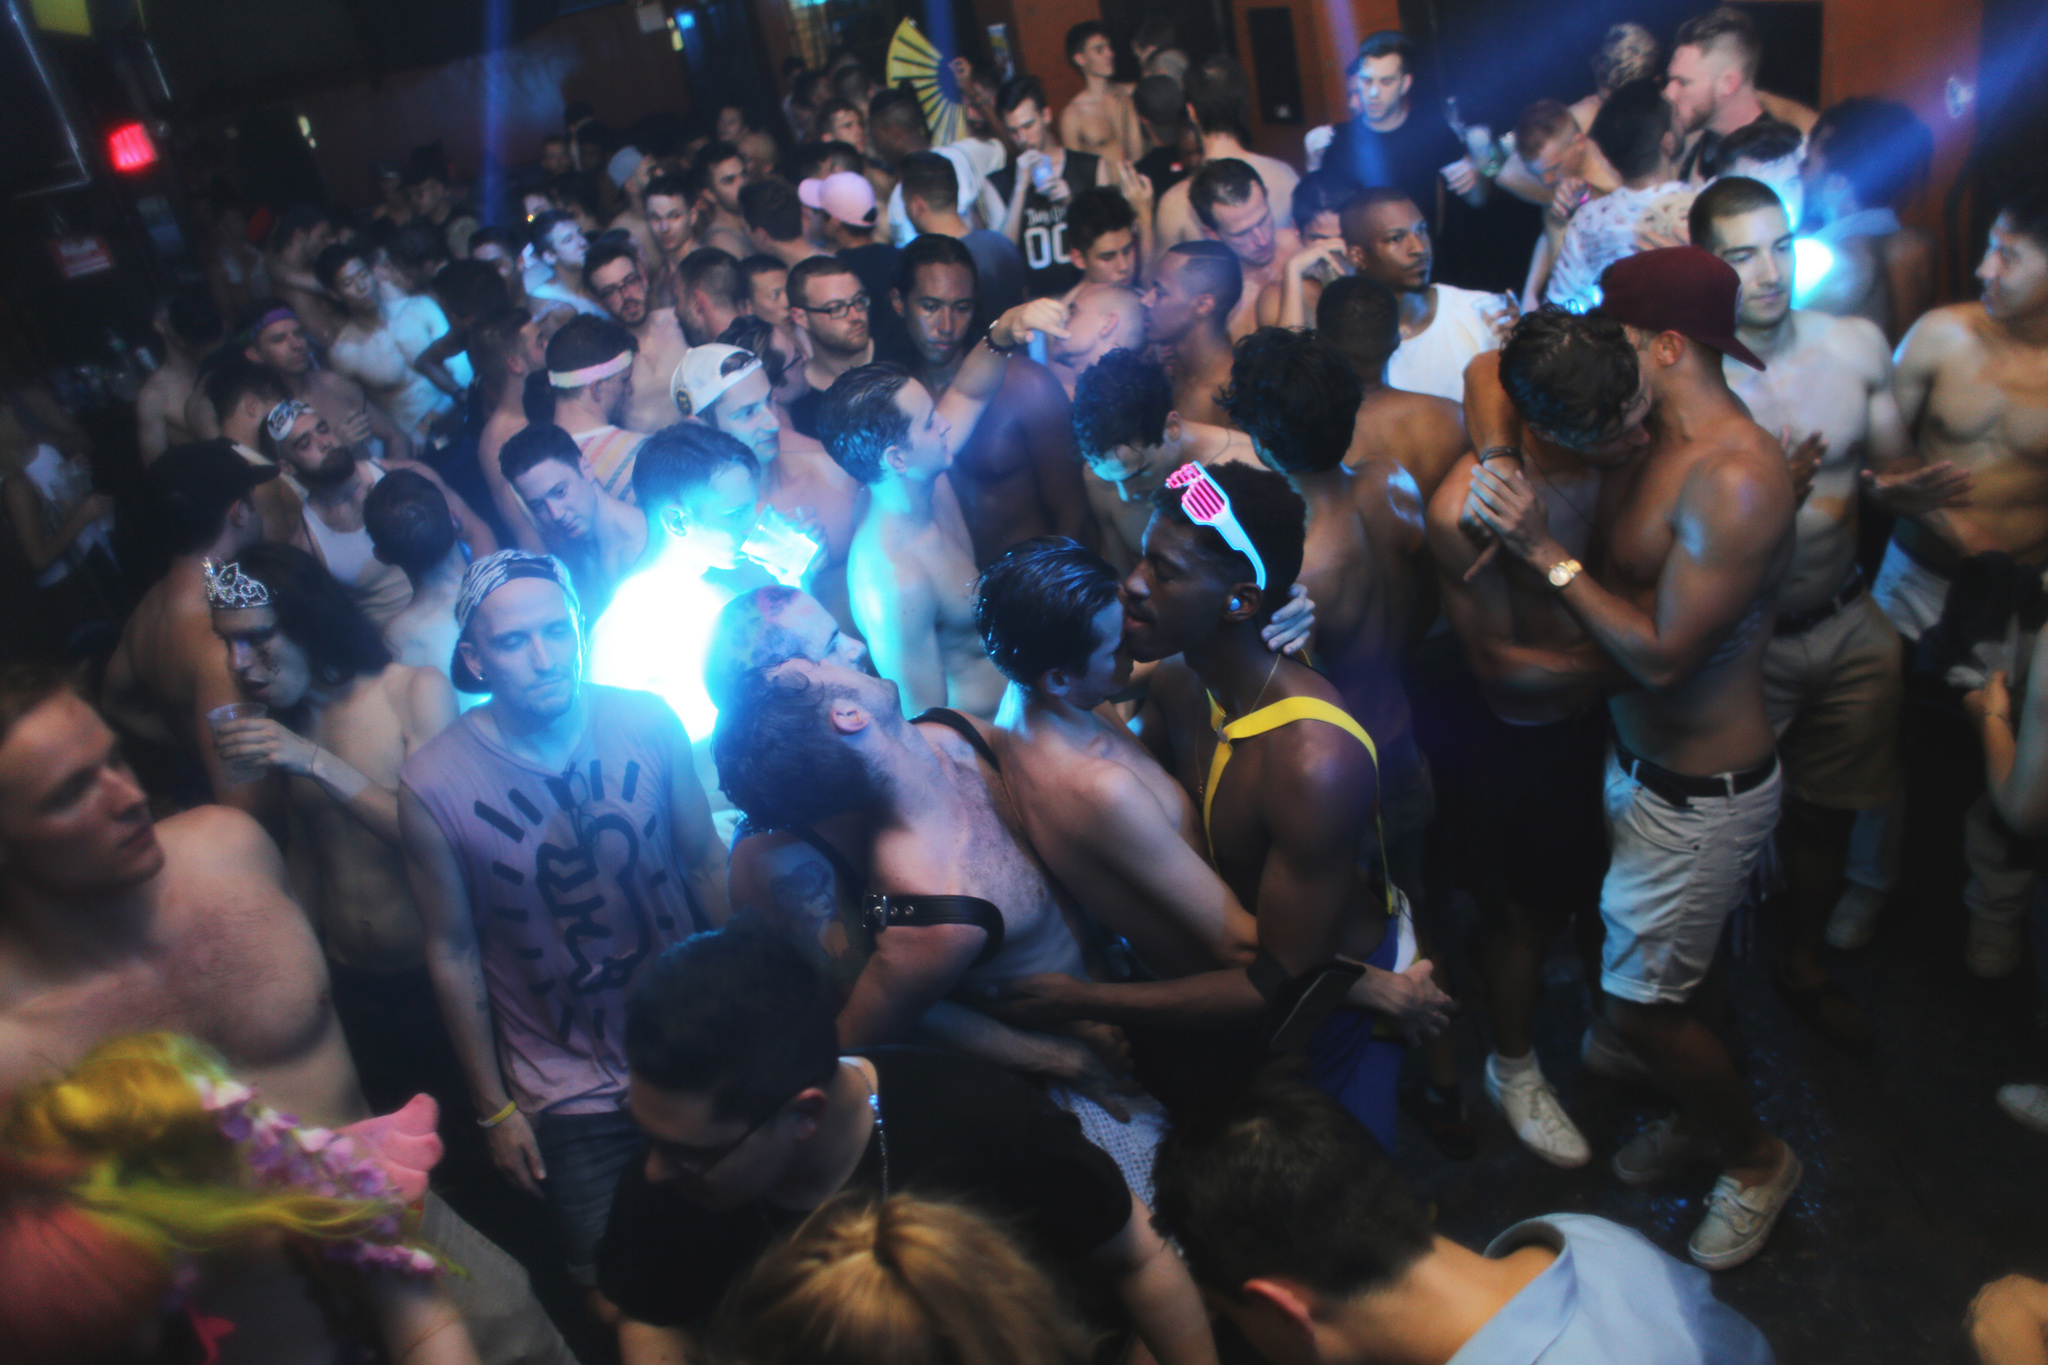 nyc gay night clubs